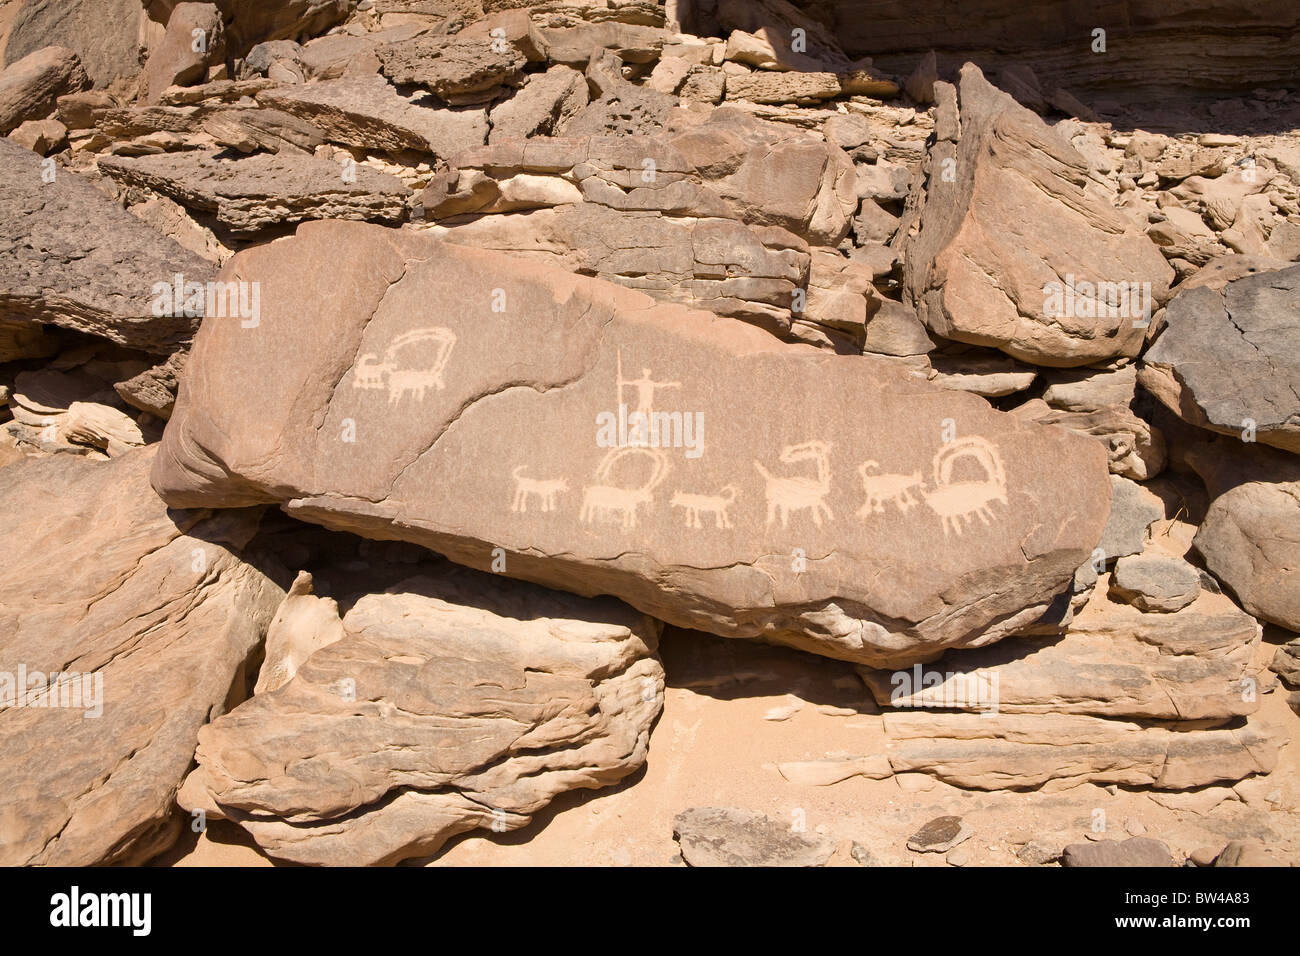 Ancient rock art showing depictions of man hunting  animals in the Eastern Desert of Egypt. - Stock Image